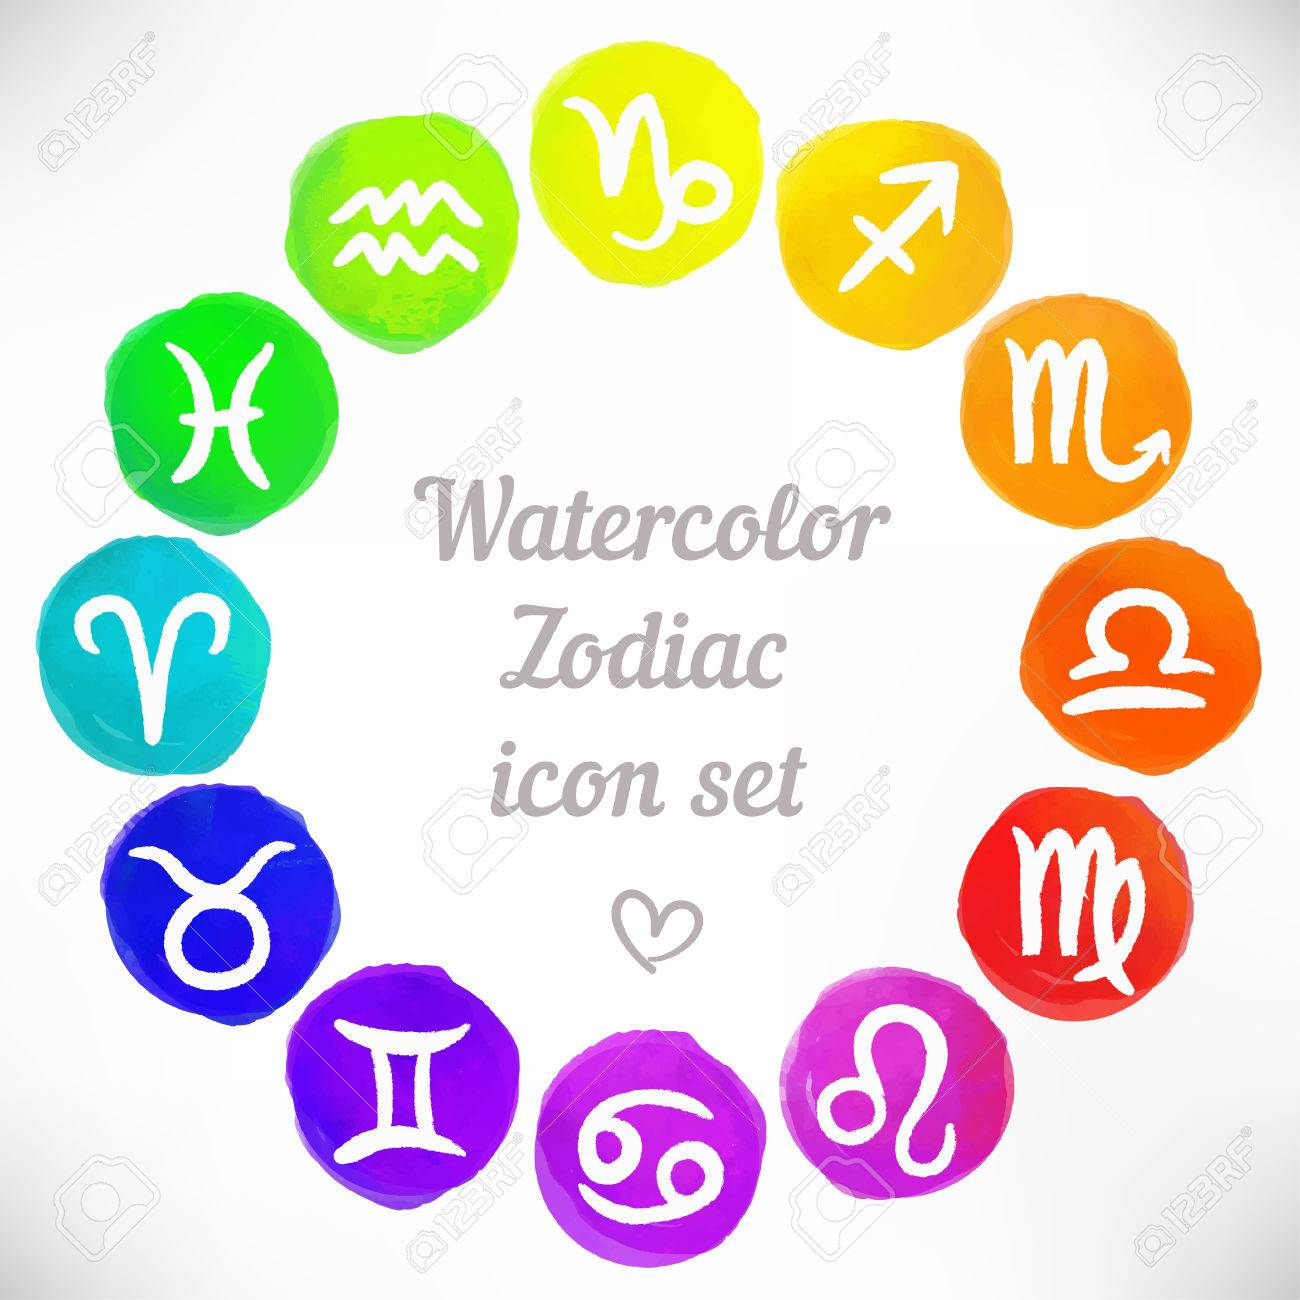 Watercolor Zodiac Icon Set Vector Sign Royalty Free Cliparts